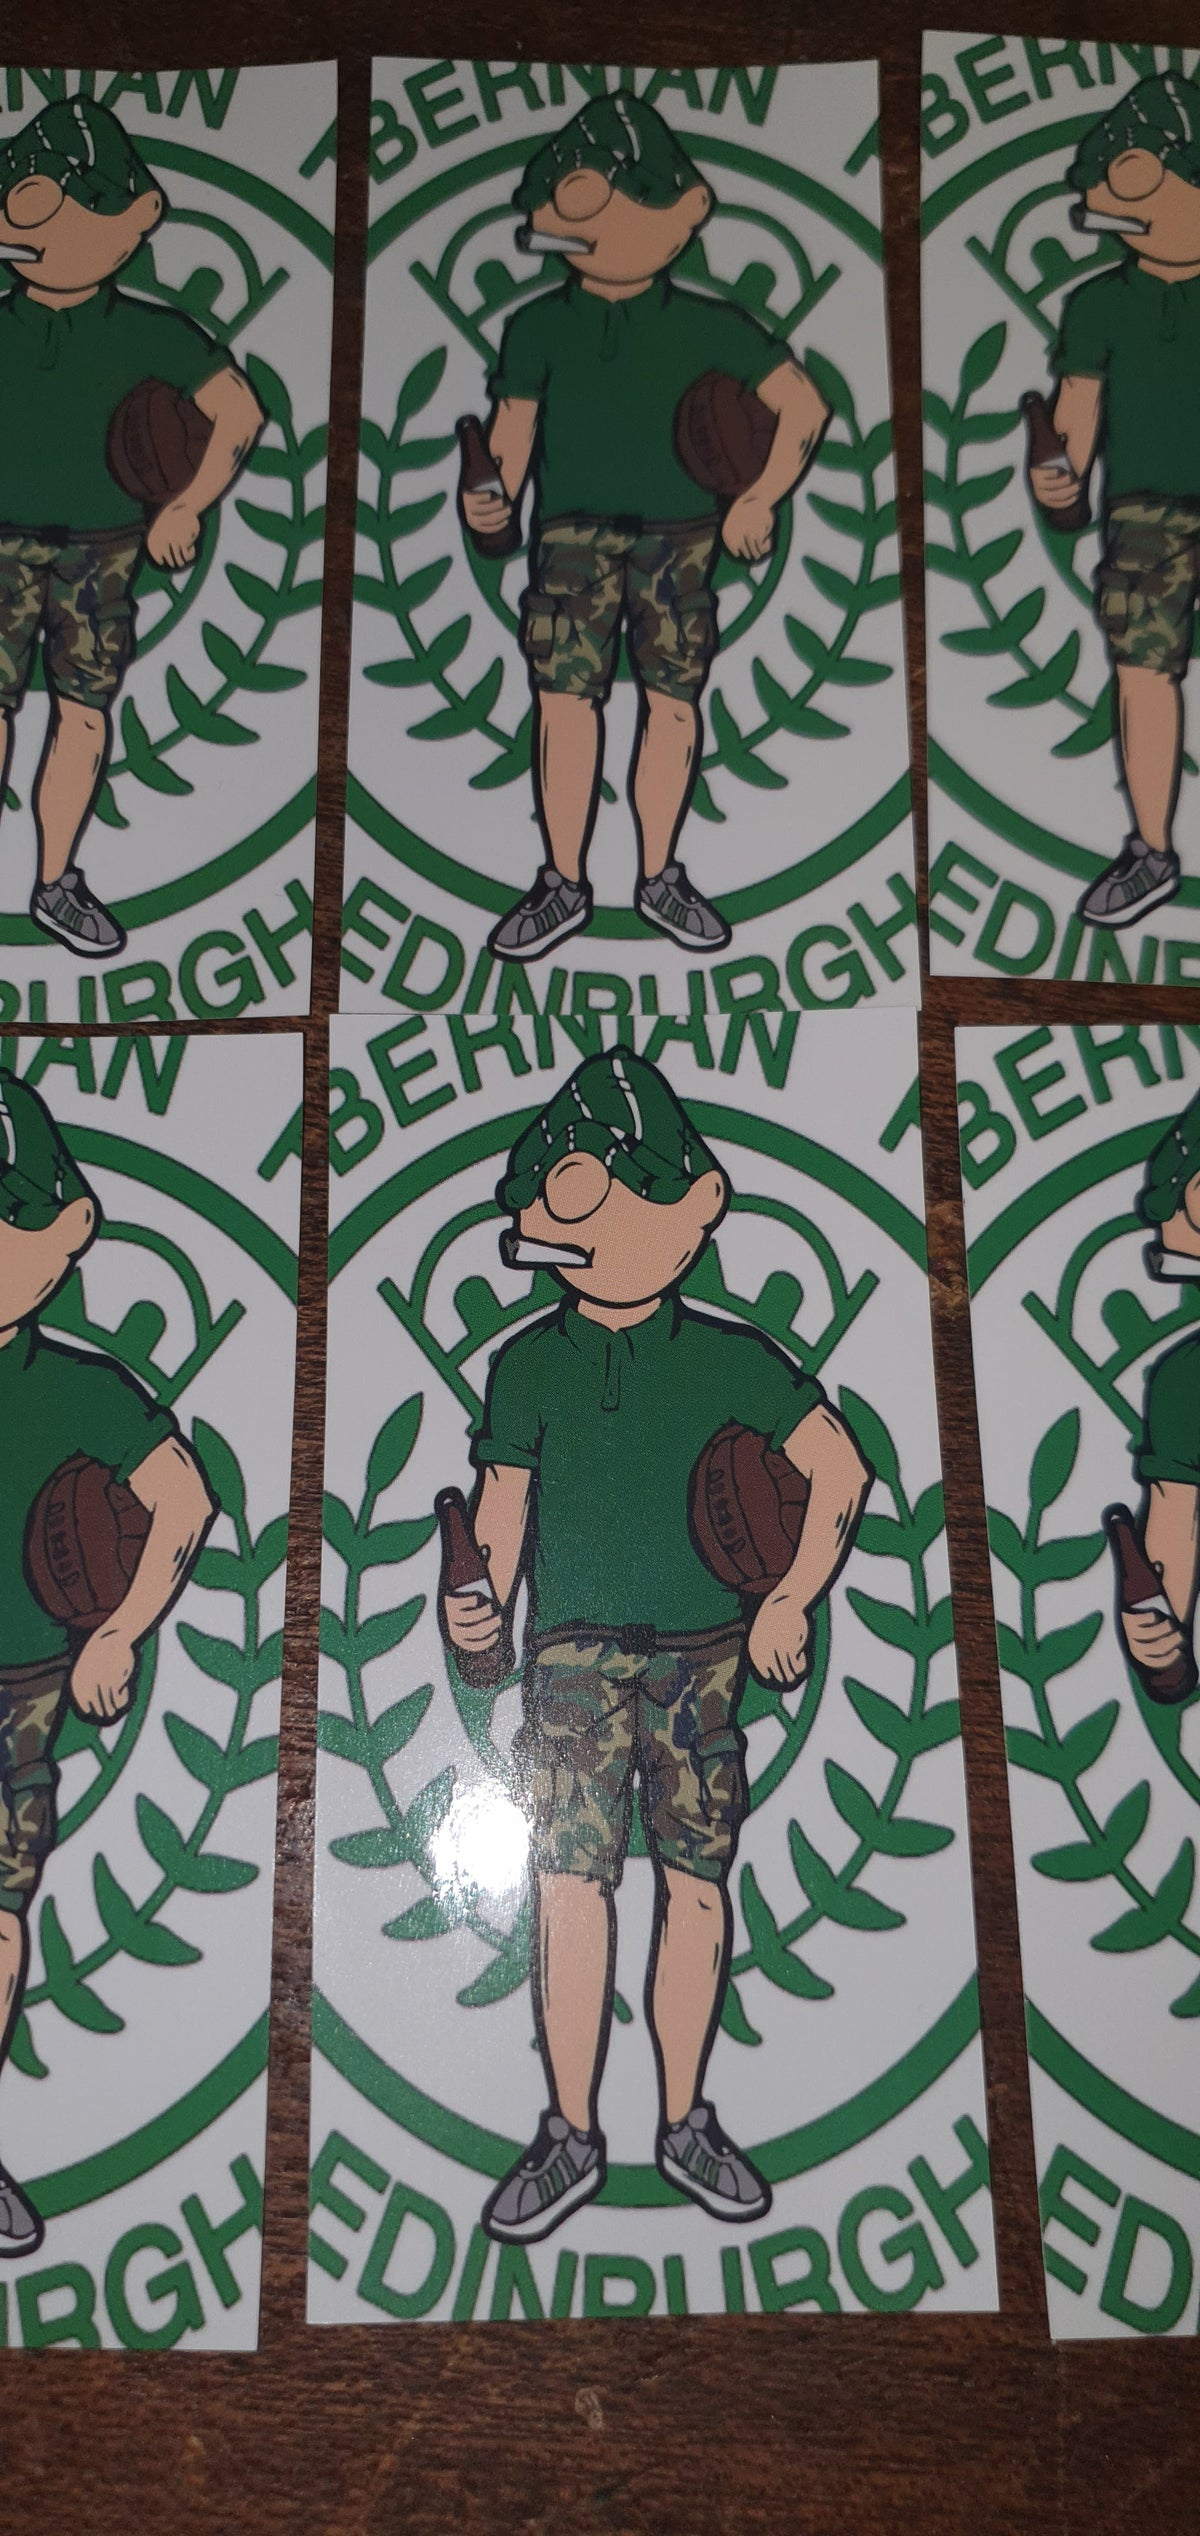 Pack of 25 10x5cm, Hibs, Hibernian retro style football/ultras stickers.